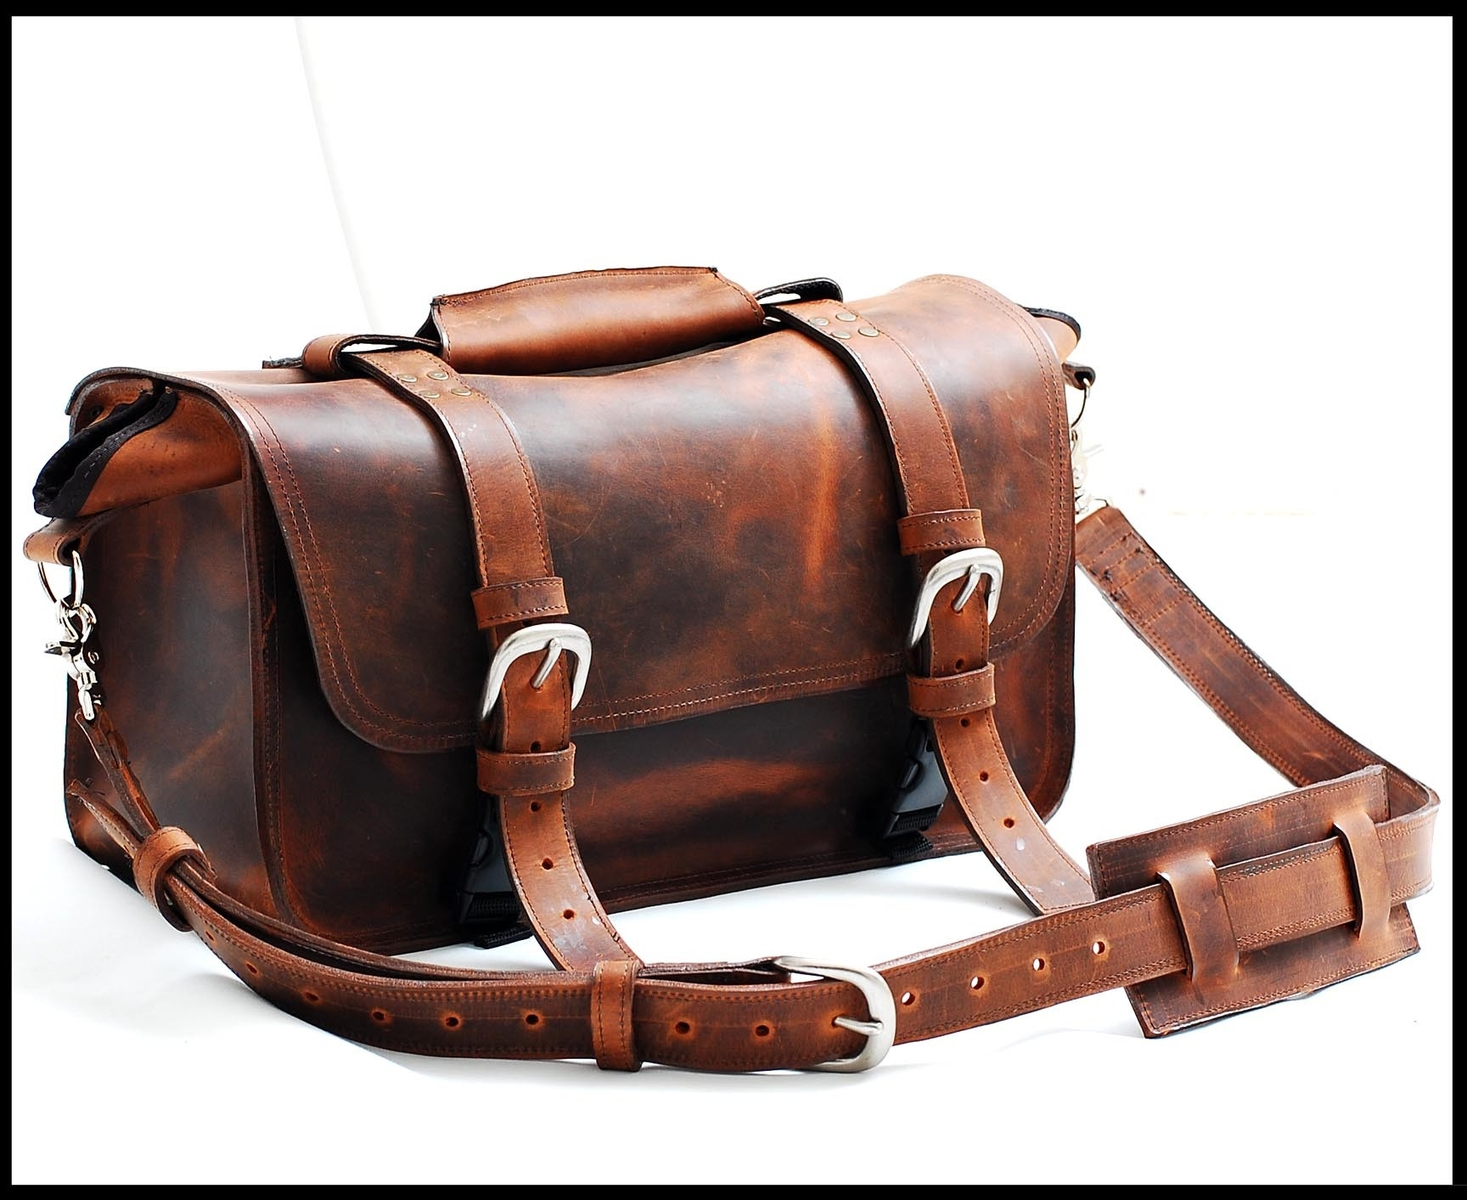 Sizzling Style Custom Camera Bags And More By